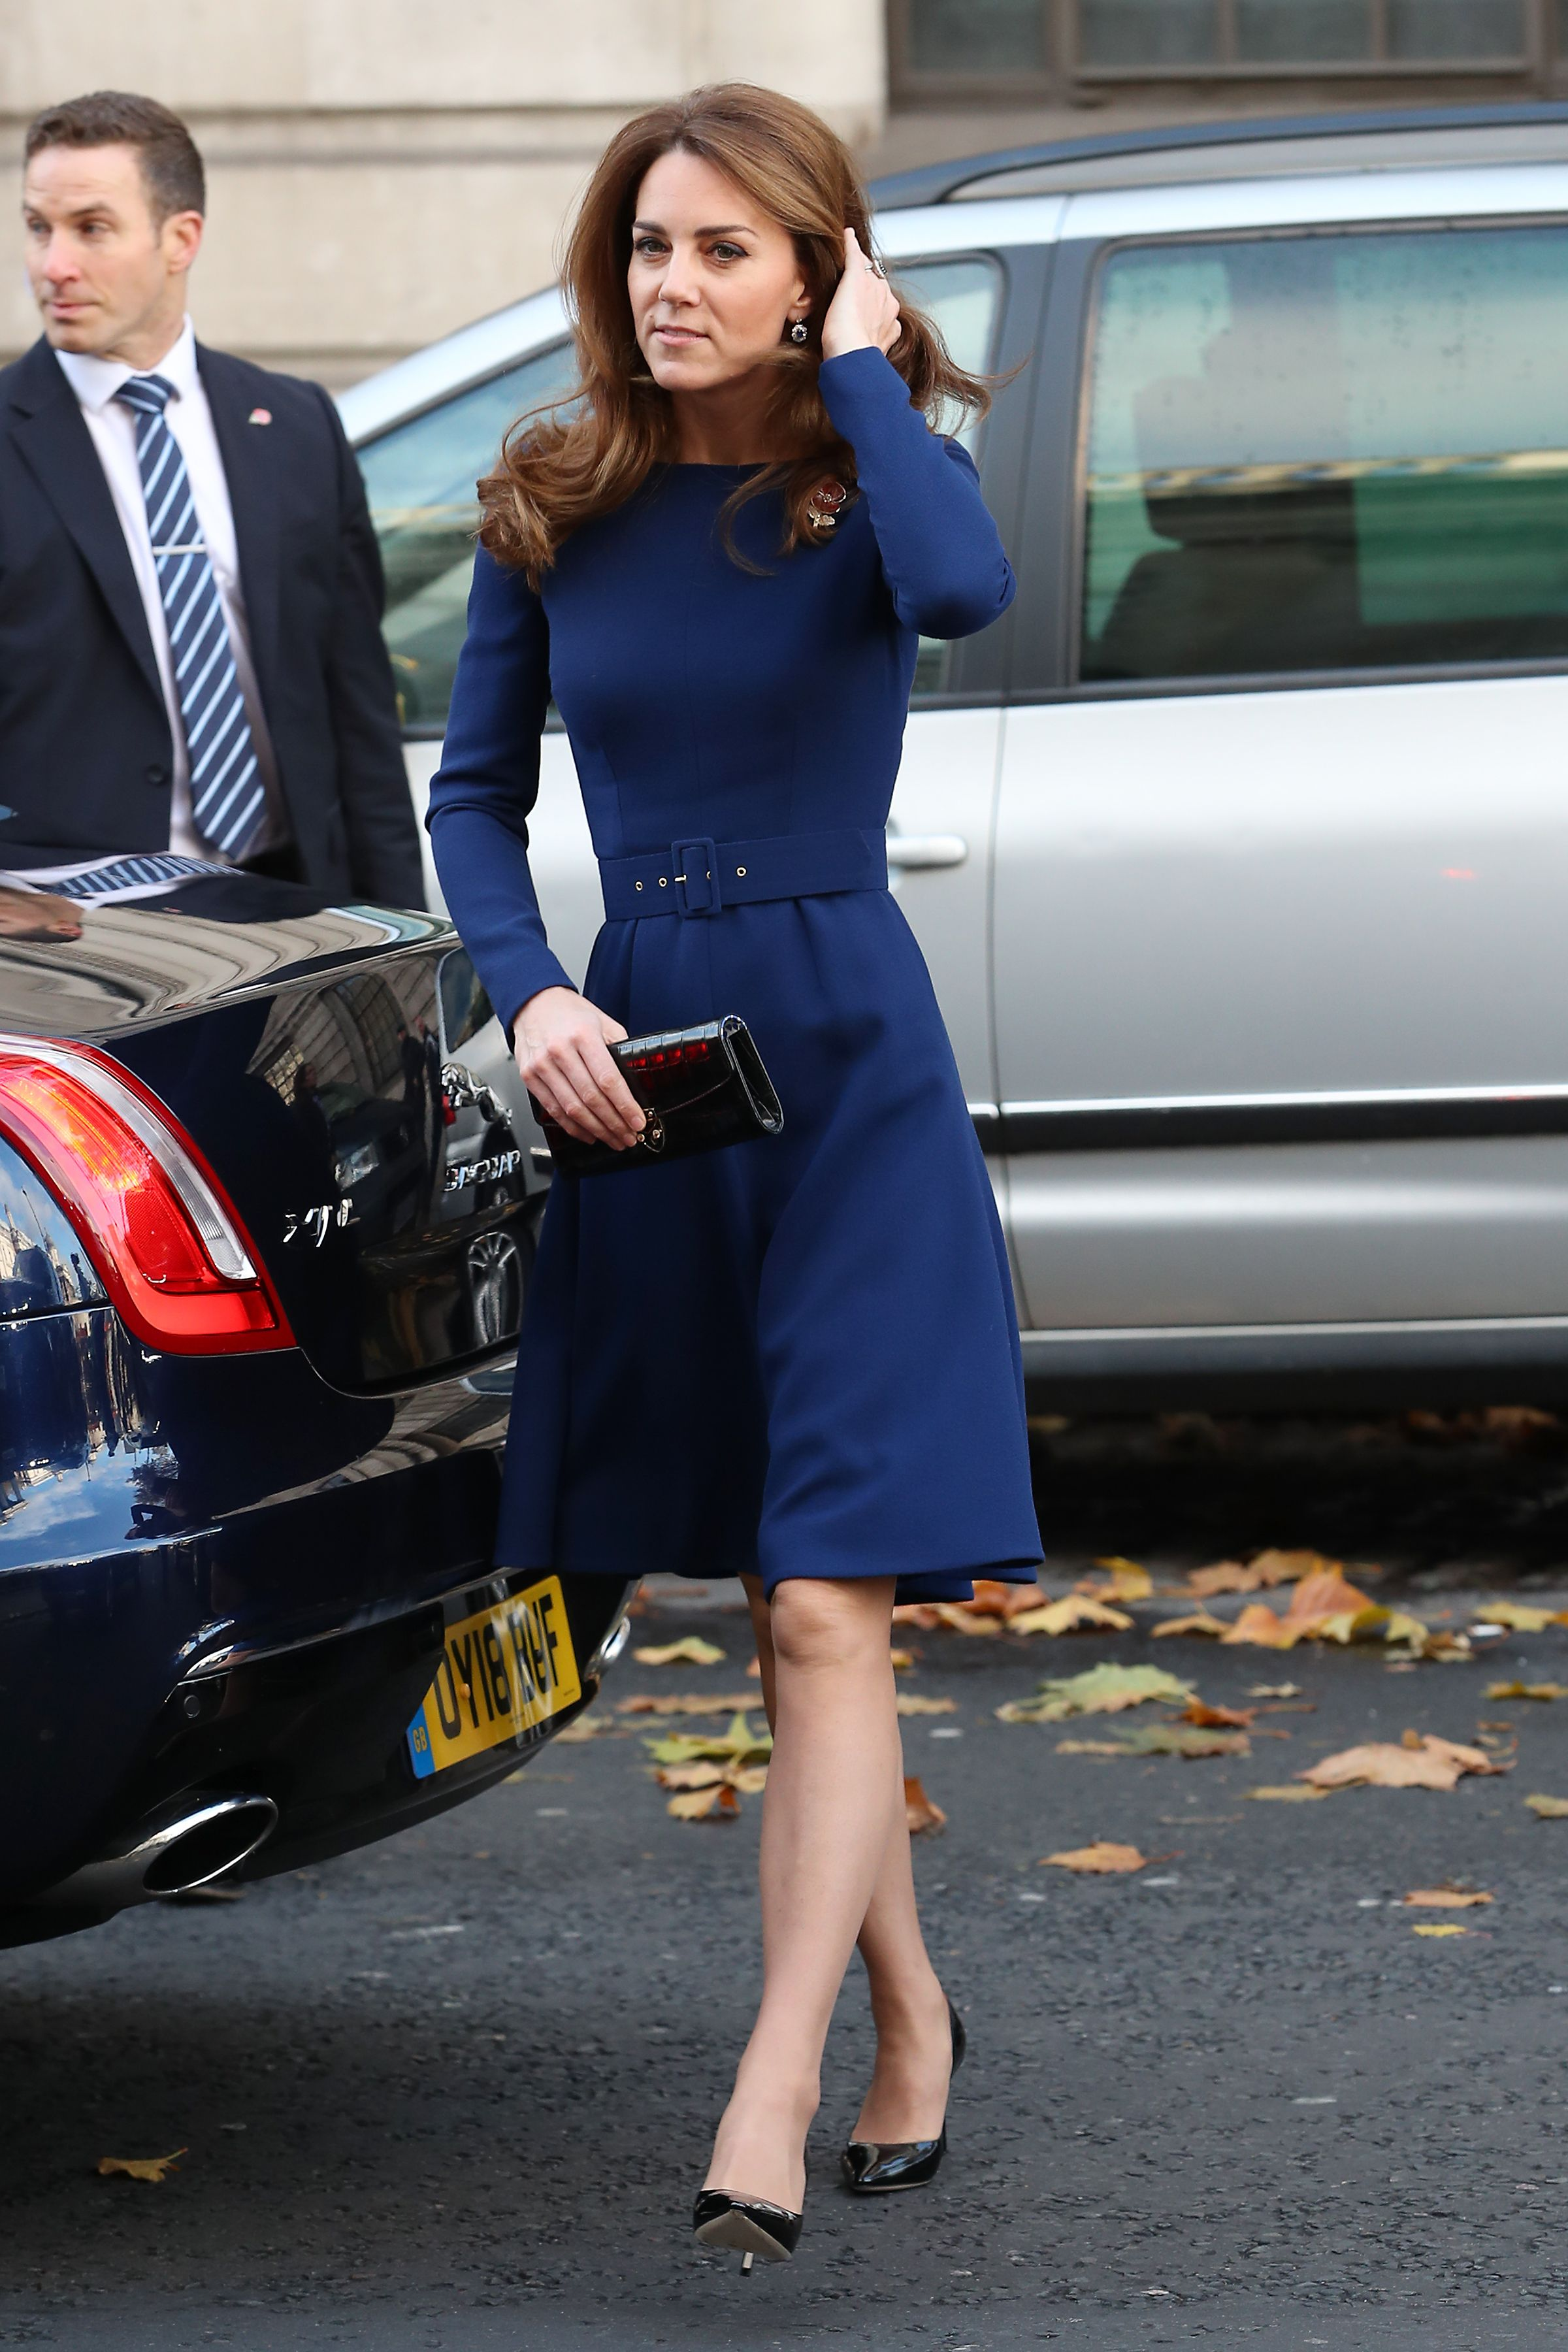 Kate Middleton Steps Out in a Royal Blue Dress for the Launch of the National Emergencies Trust